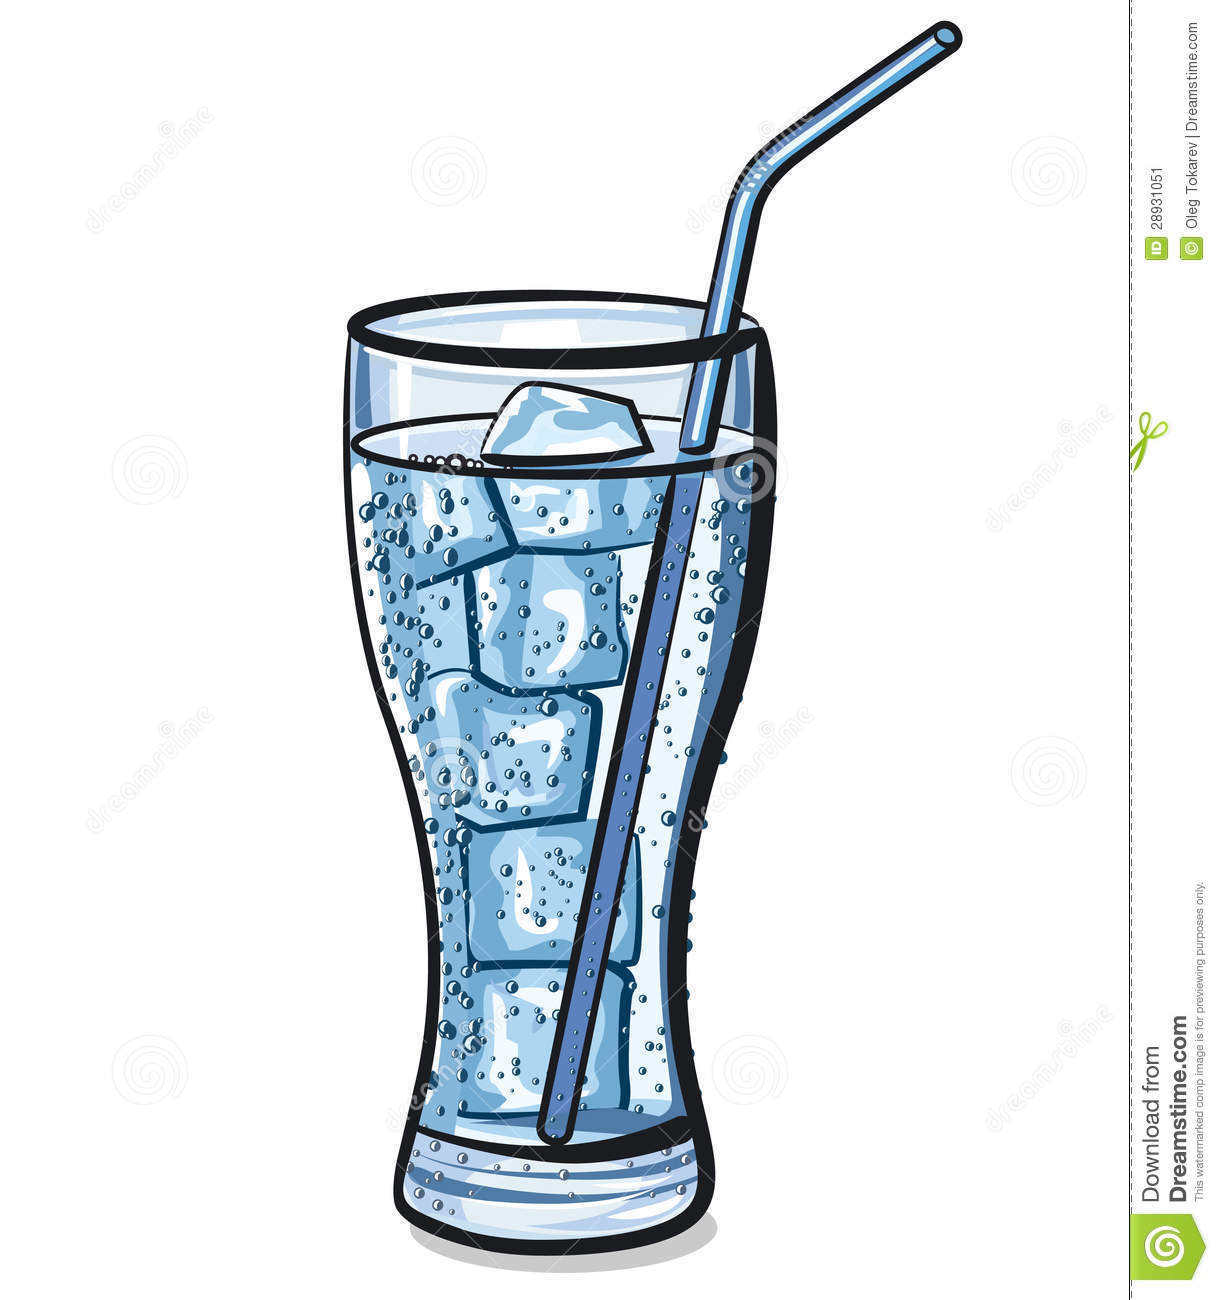 glass of water clipart clipart panda free clipart images rh clipartpanda com glass of water clipart vector glass of water clipart vector